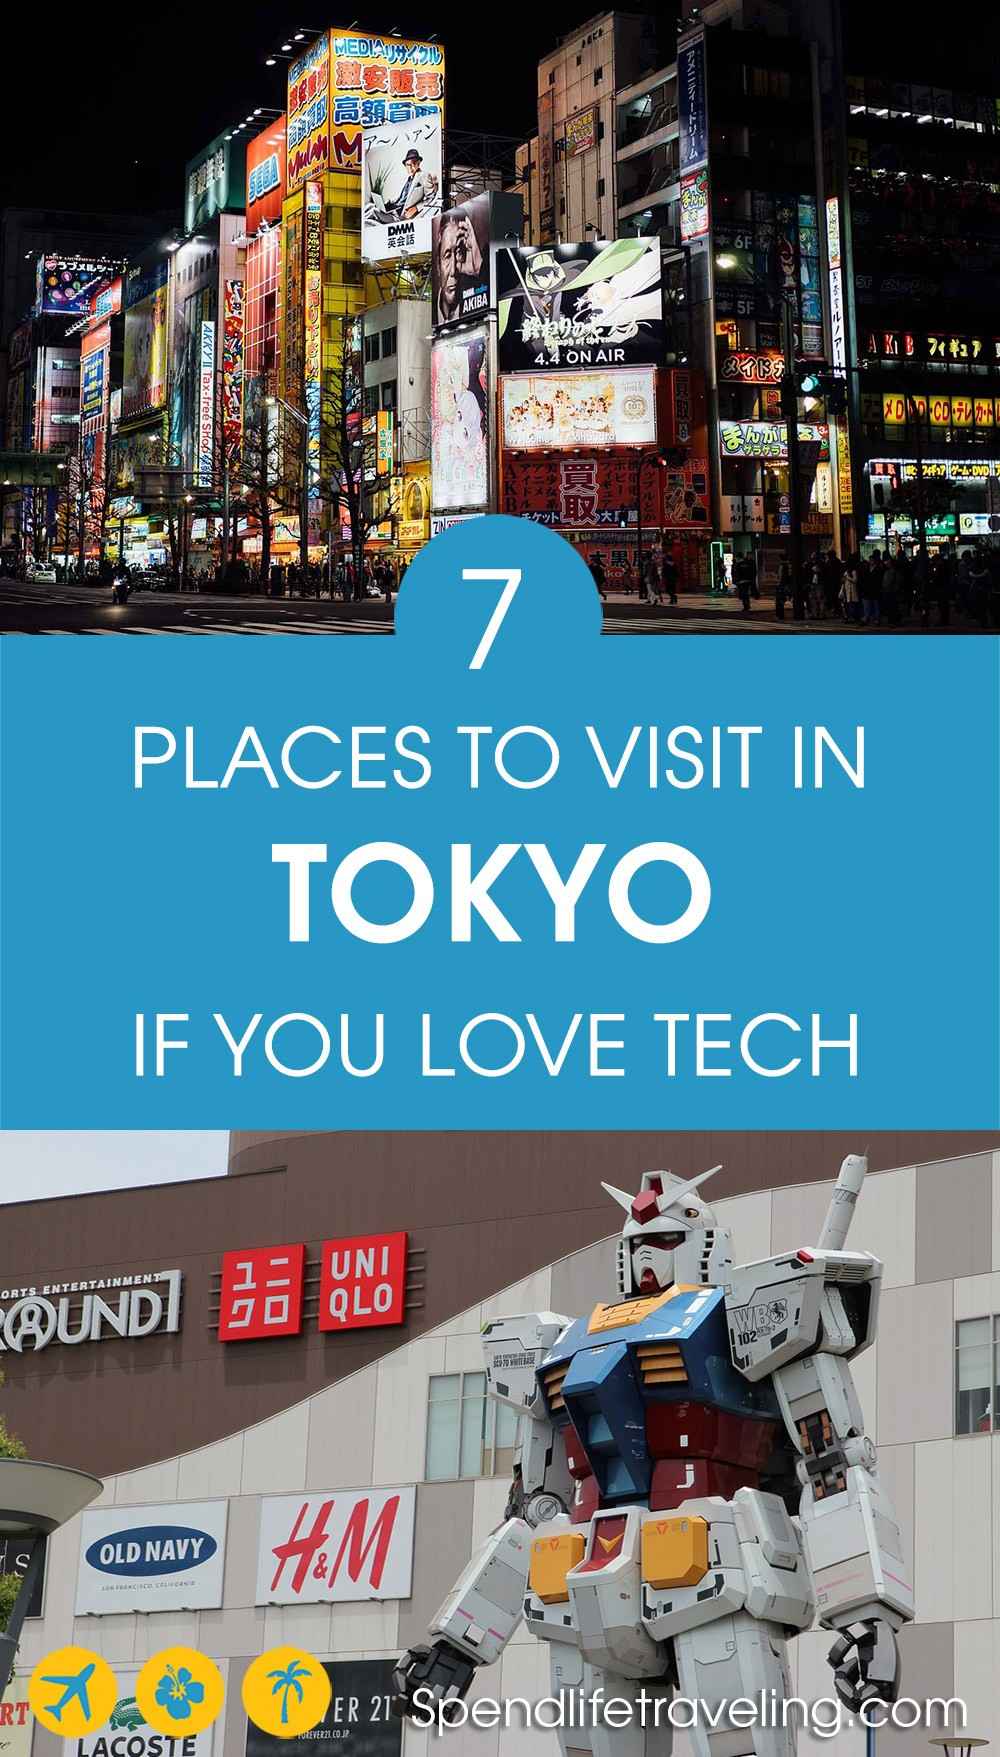 If you love tech, gaming, anime or any of the innovation Tokyo has to offer, check out these 7 places! #Tokyo #techgeek #travelTokyo